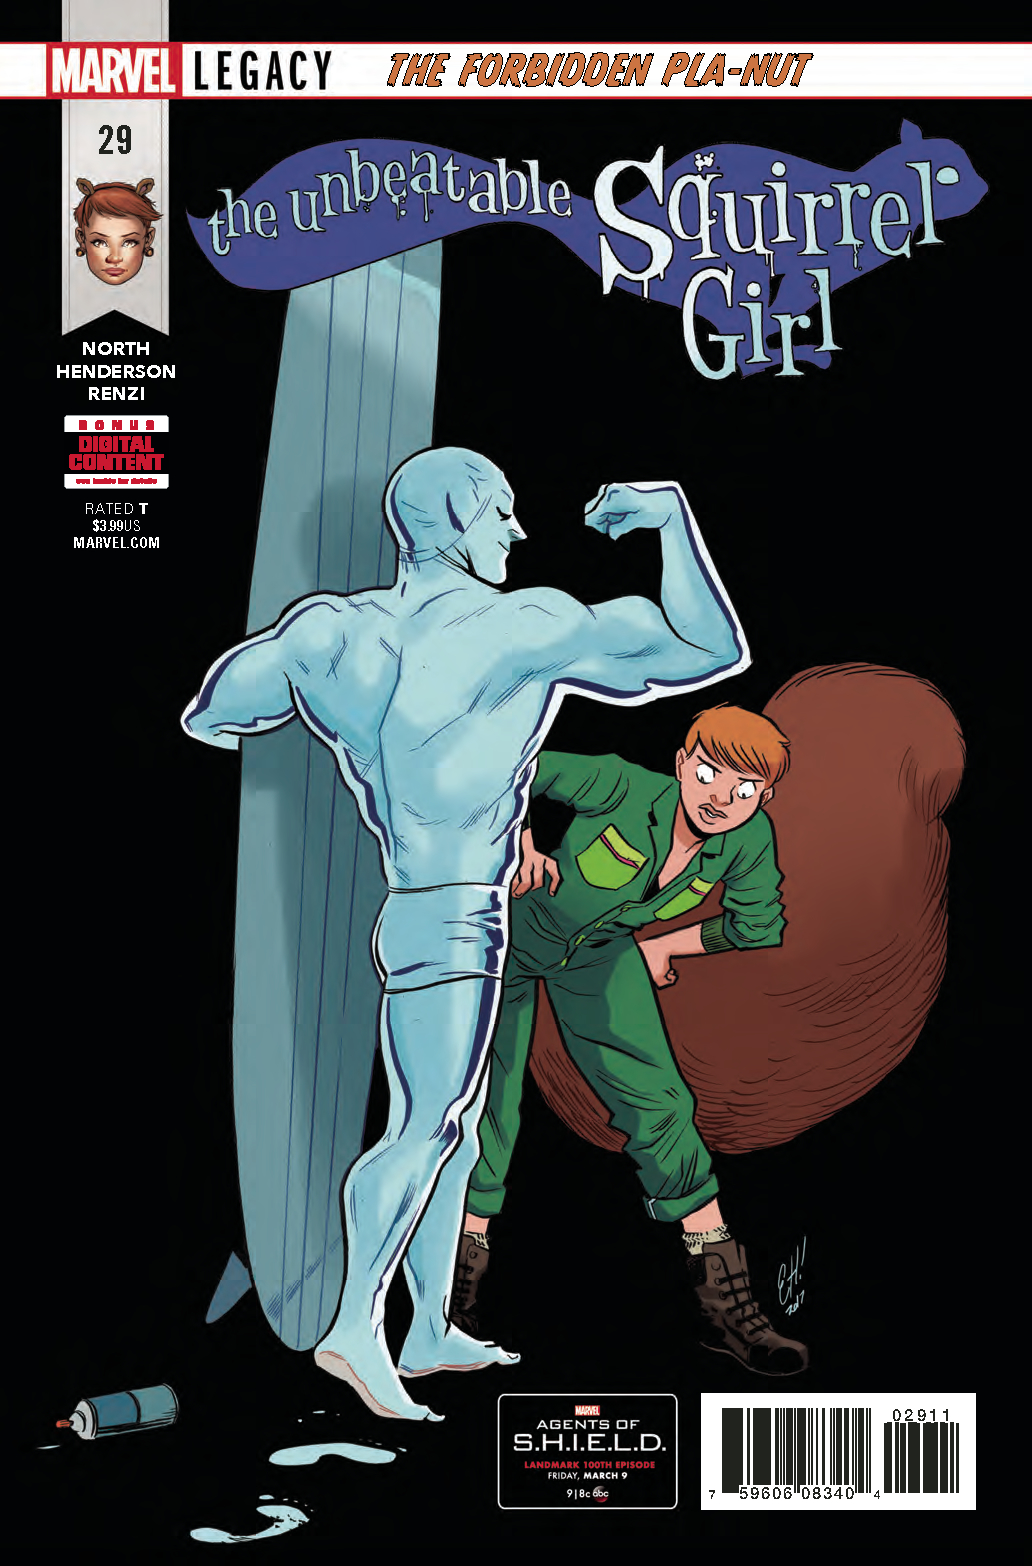 UNBEATABLE SQUIRREL GIRL #29 LEG